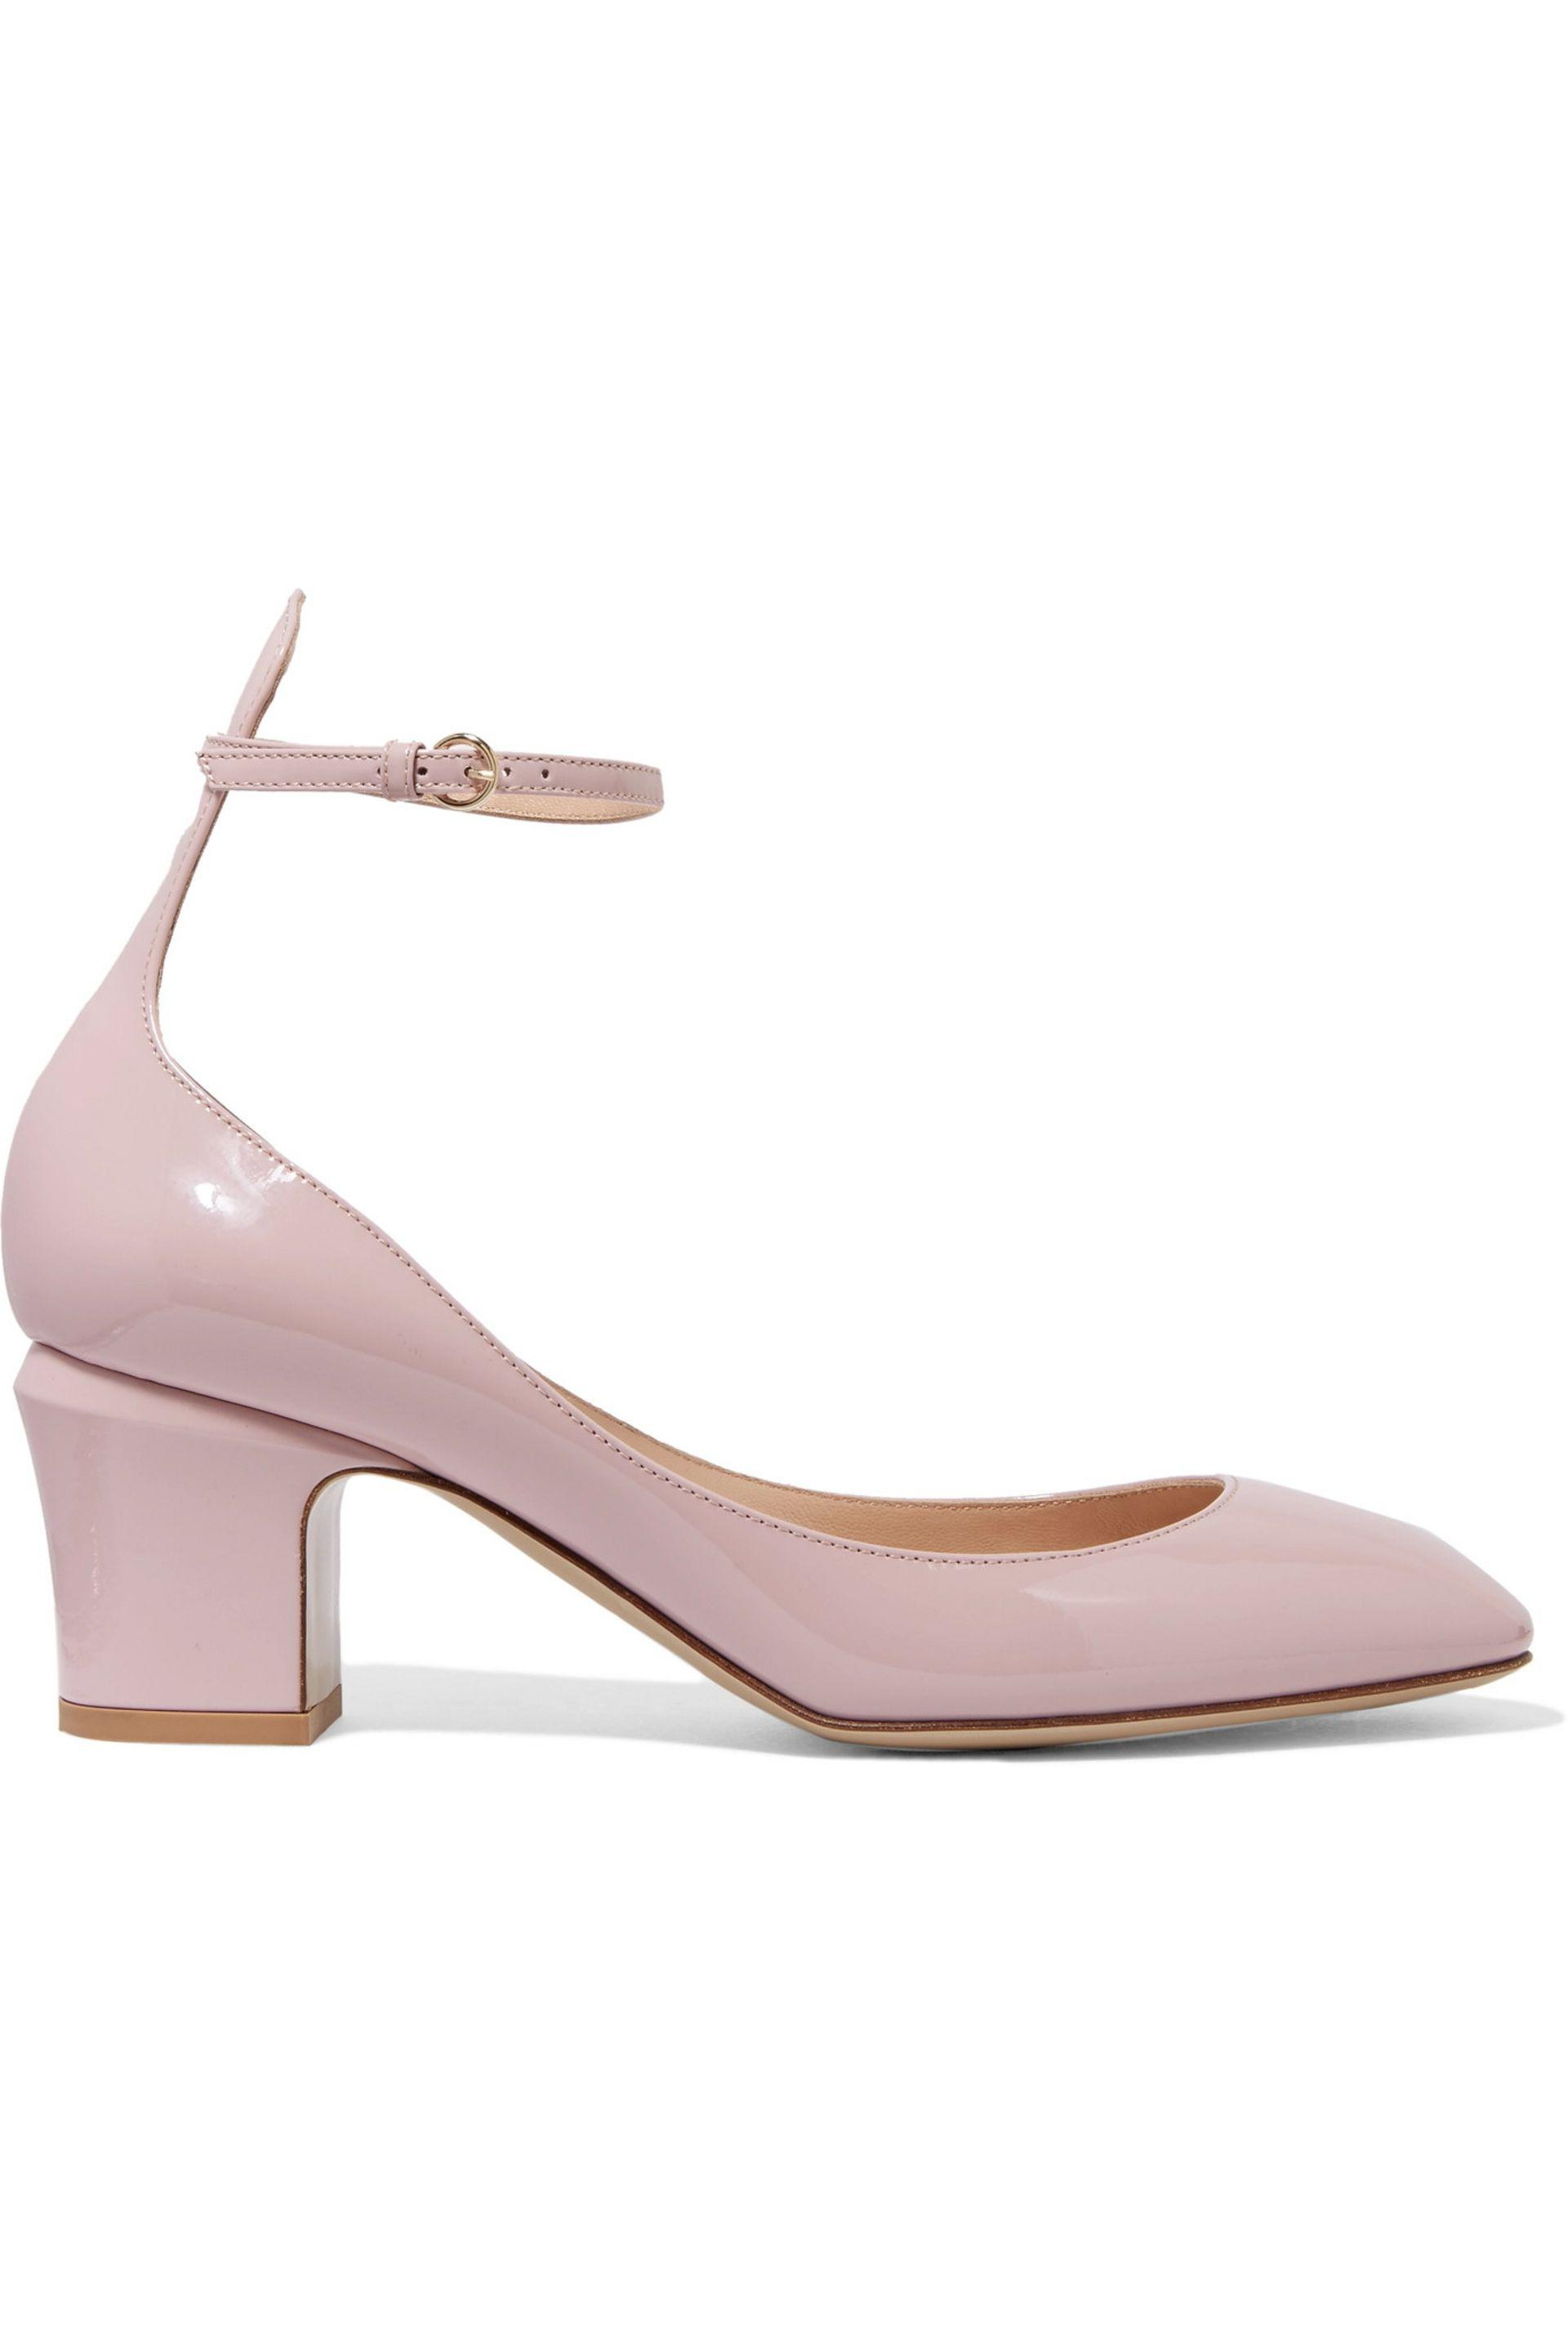 Baby Pink Louboutin Shoes